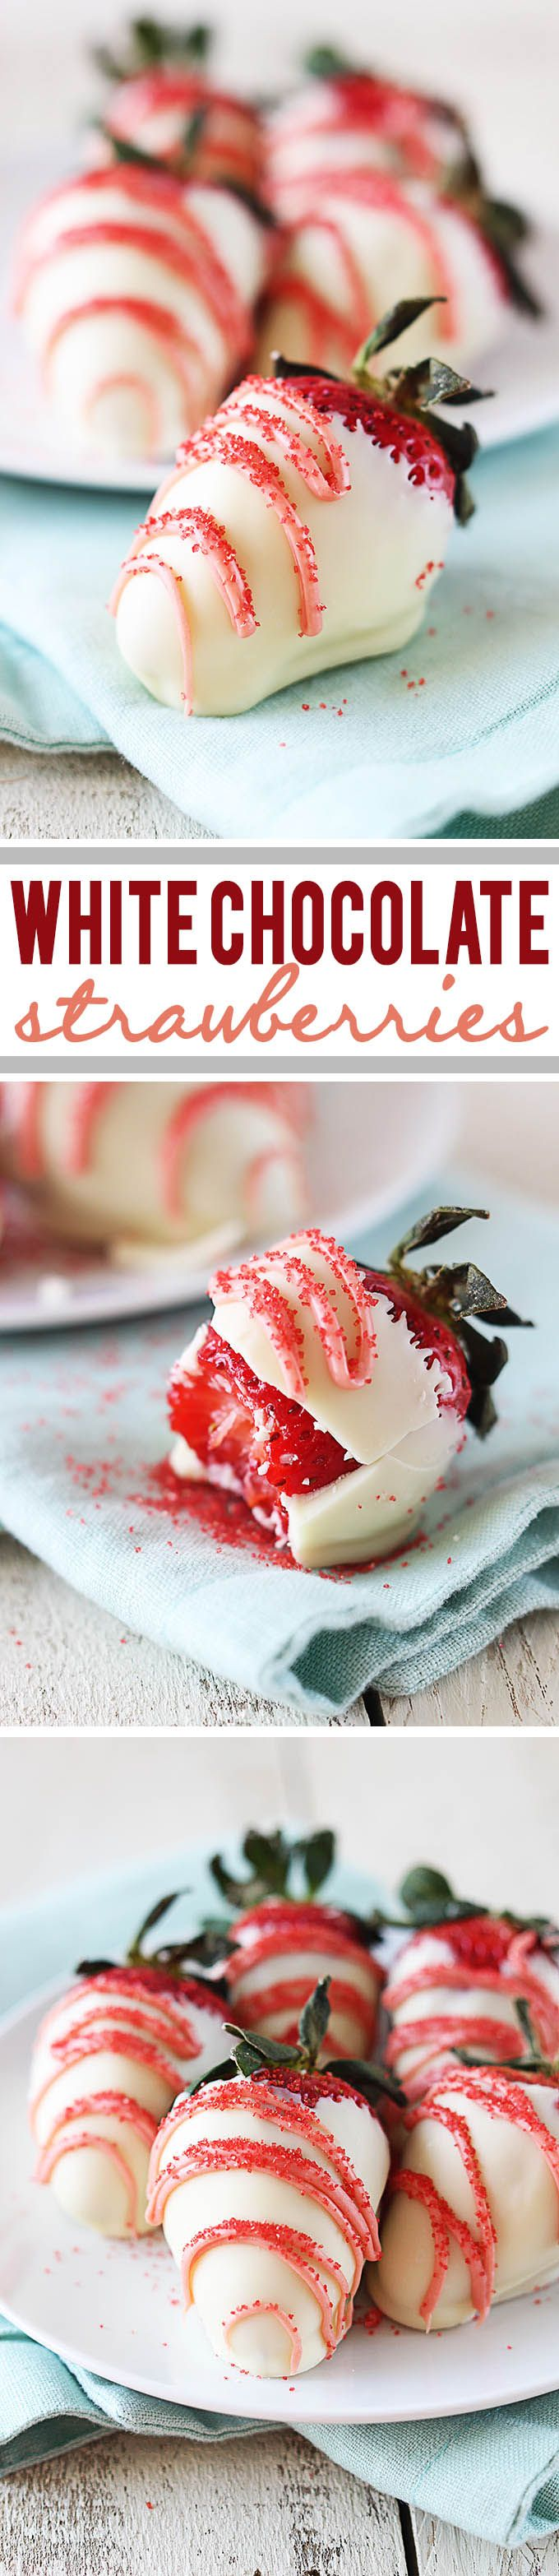 Best 25+ Dipped strawberries ideas on Pinterest | Chocolate dipped ...